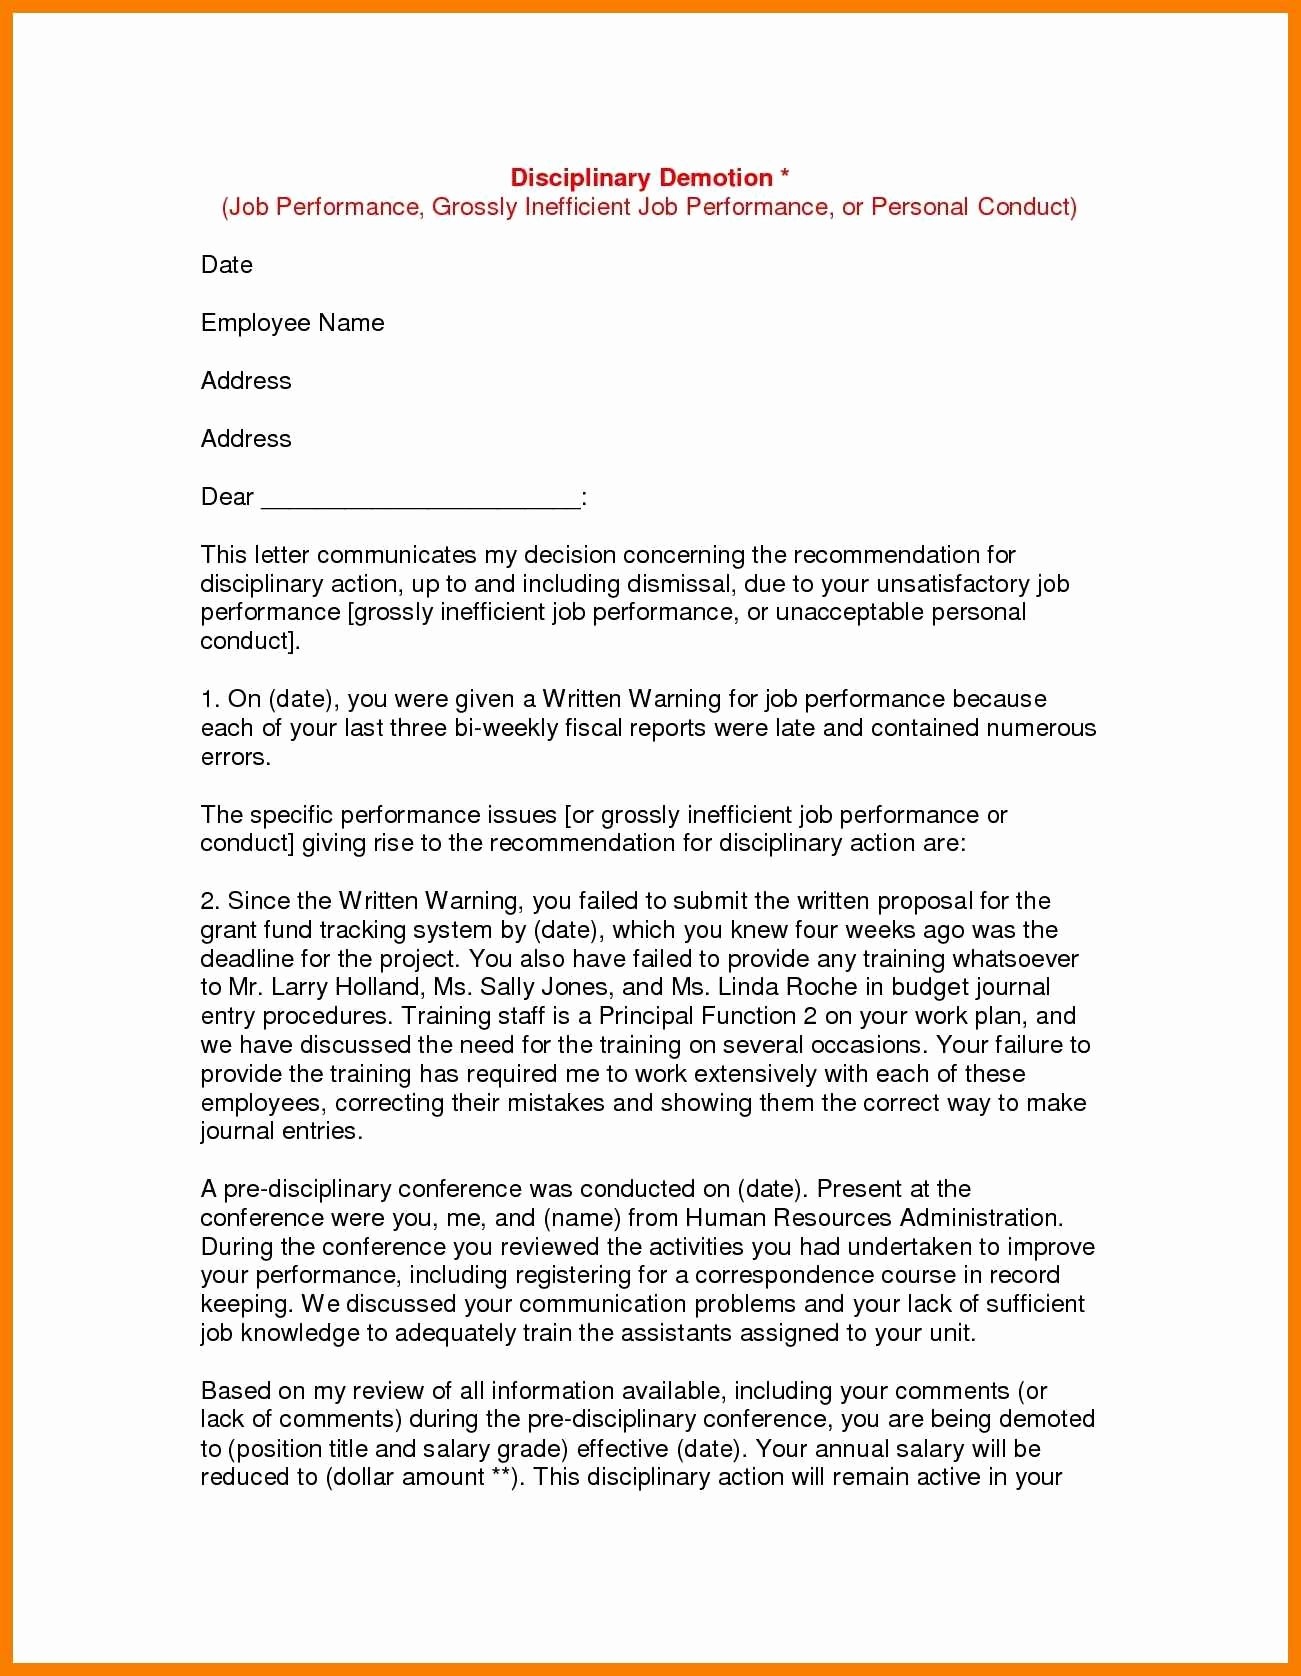 Voluntary Demotion Letter Template New 9 10 Demoted Letter